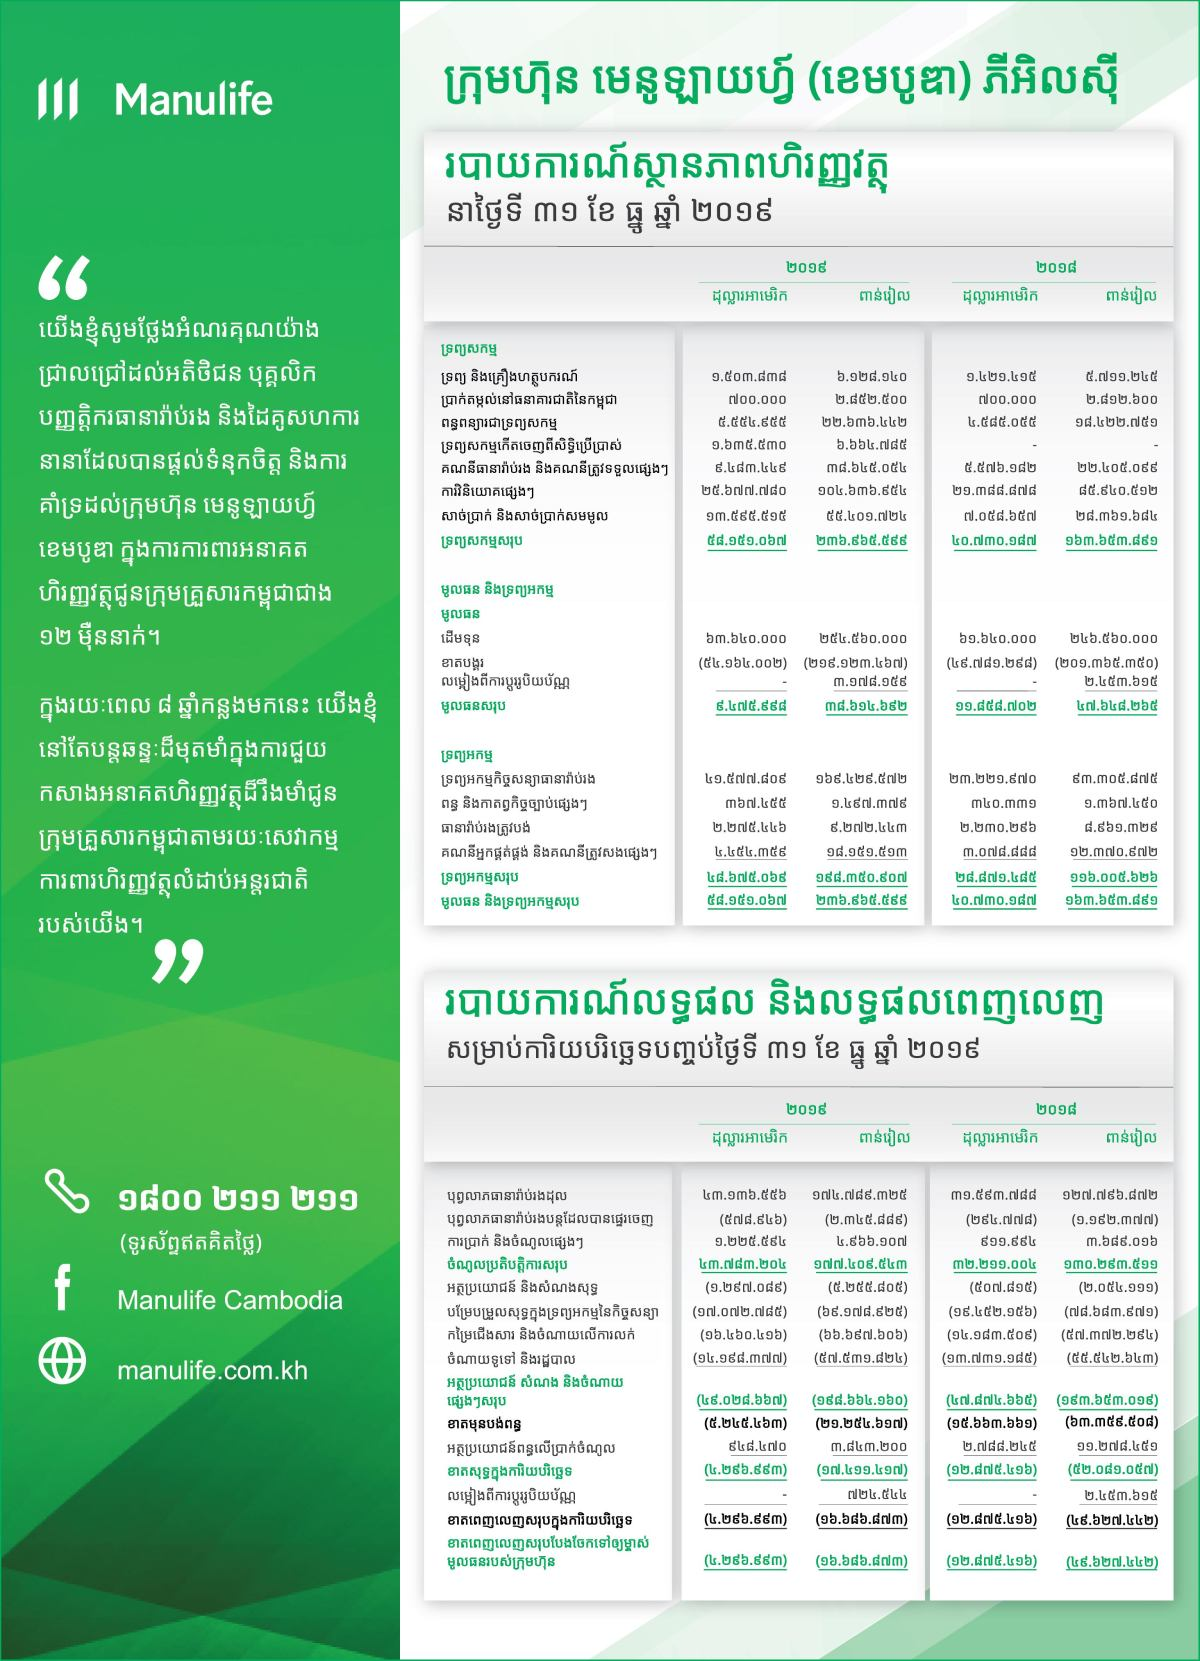 financial report 2019-manulife cambodia-life insurance-km